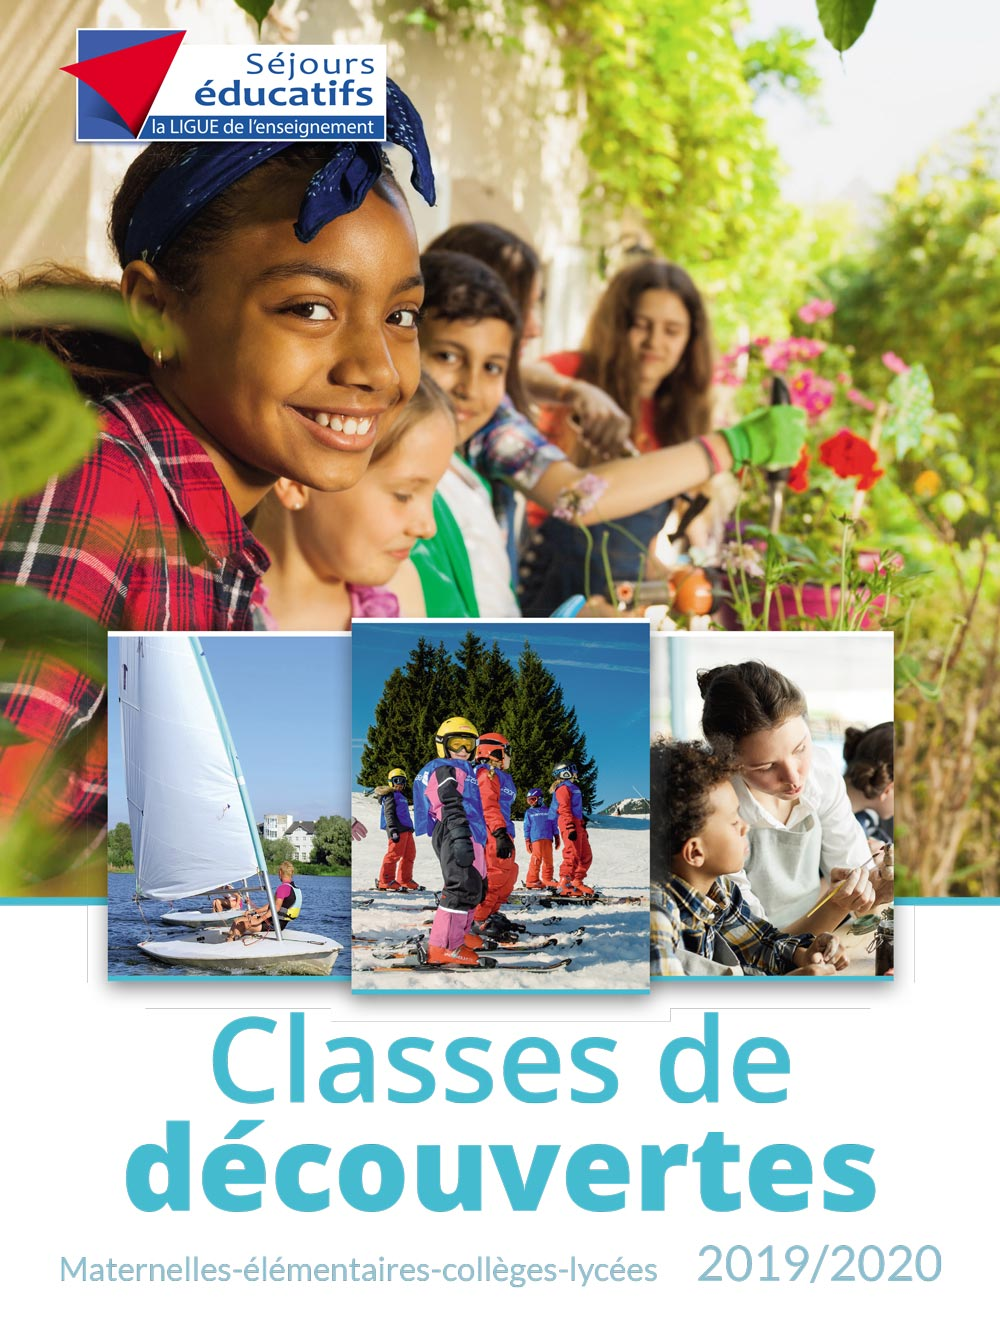 Classes de decouvertes 2019 2020 p1